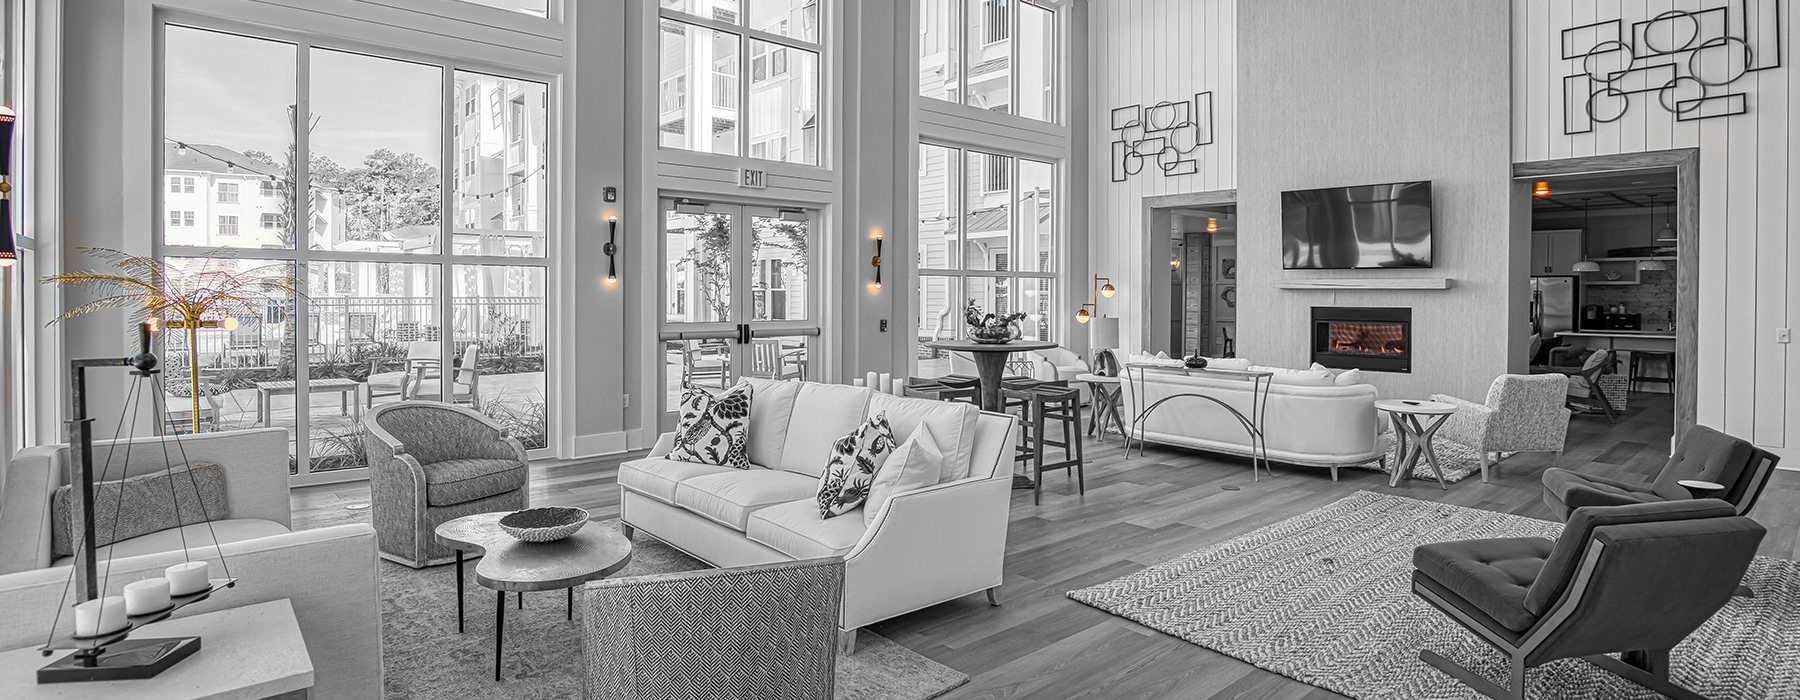 Gorgeous, well-lit lobby space with ample seating